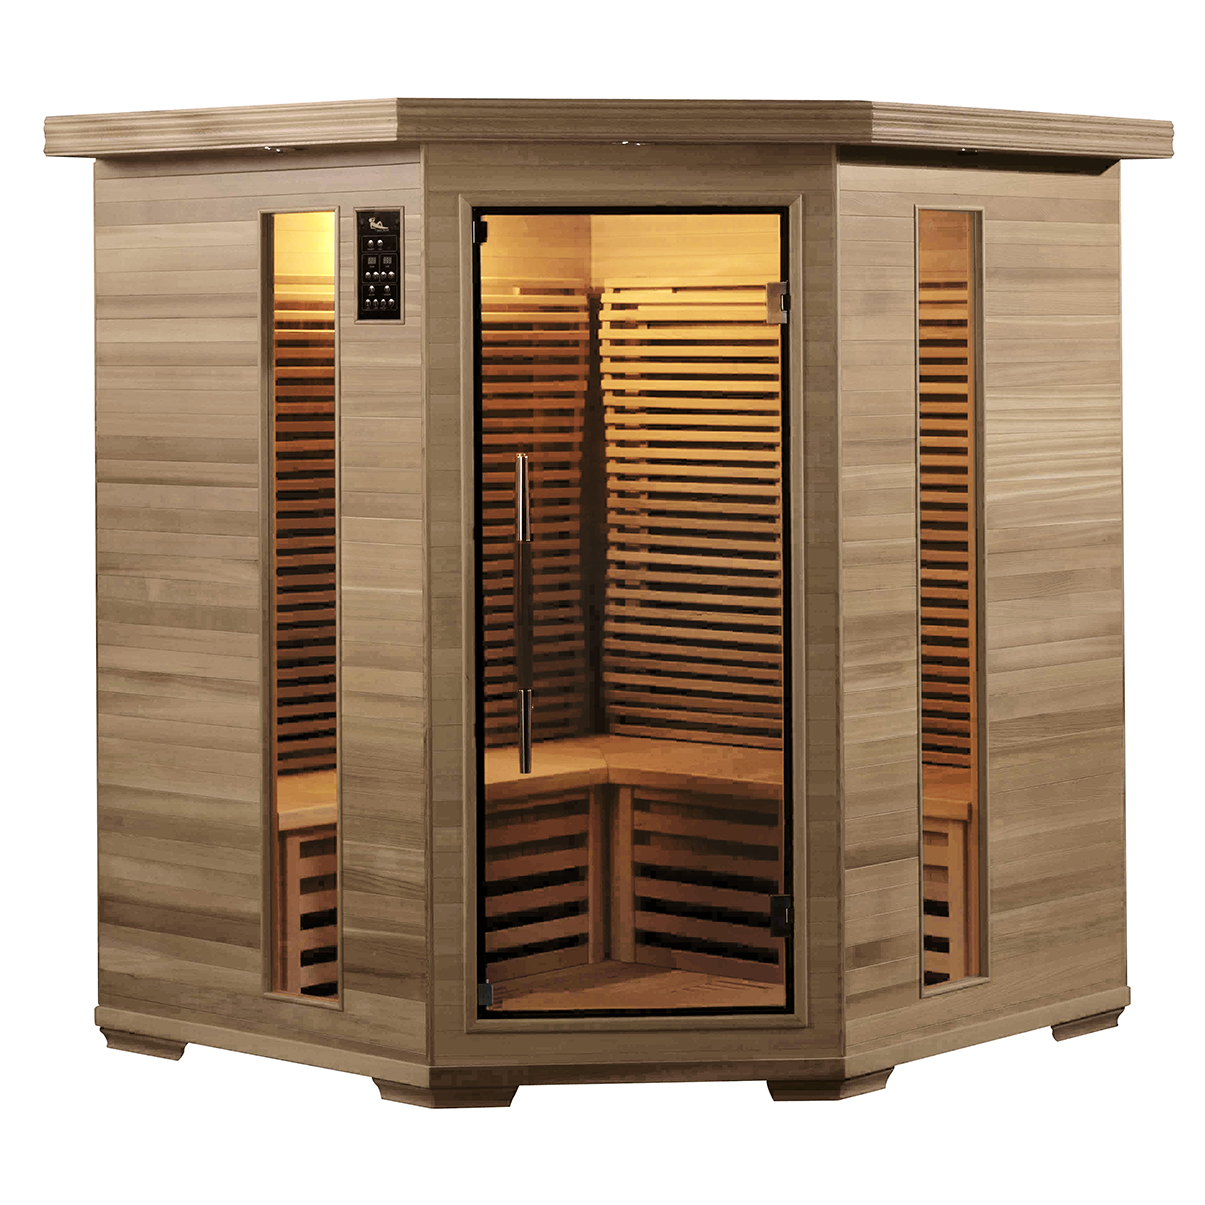 Piscinex sauna duo sauna infrarouge harmony 3 4 places - Prix sauna infrarouge ...